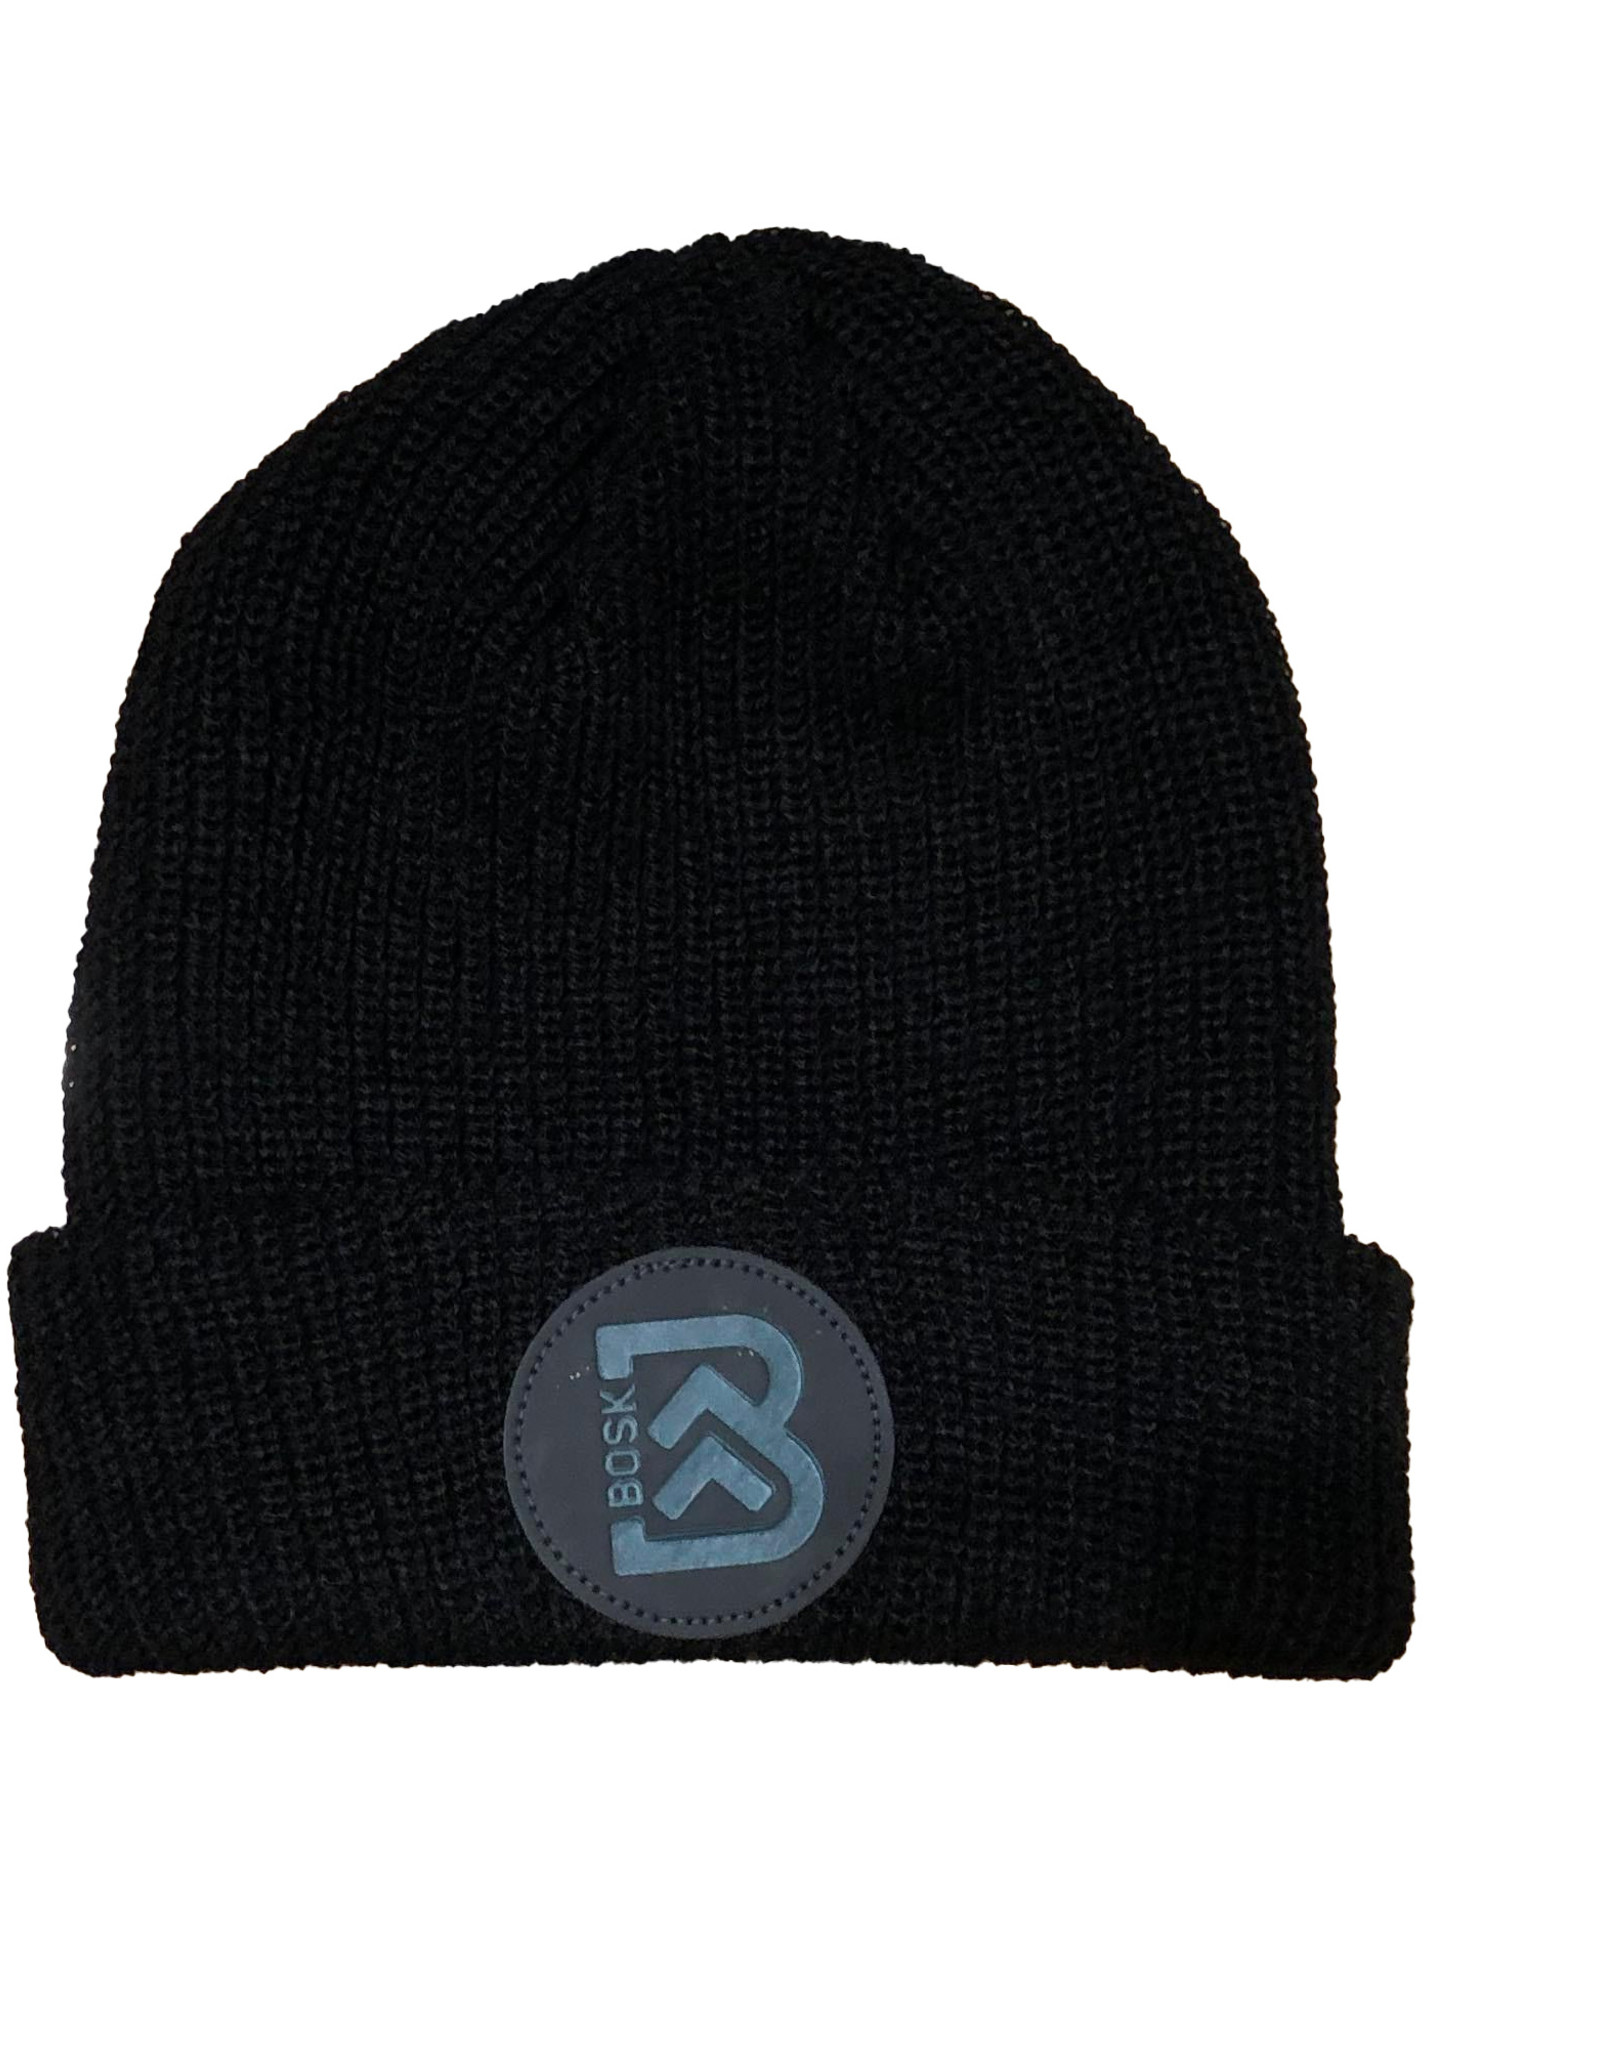 Tuque Bosk Loose Knit